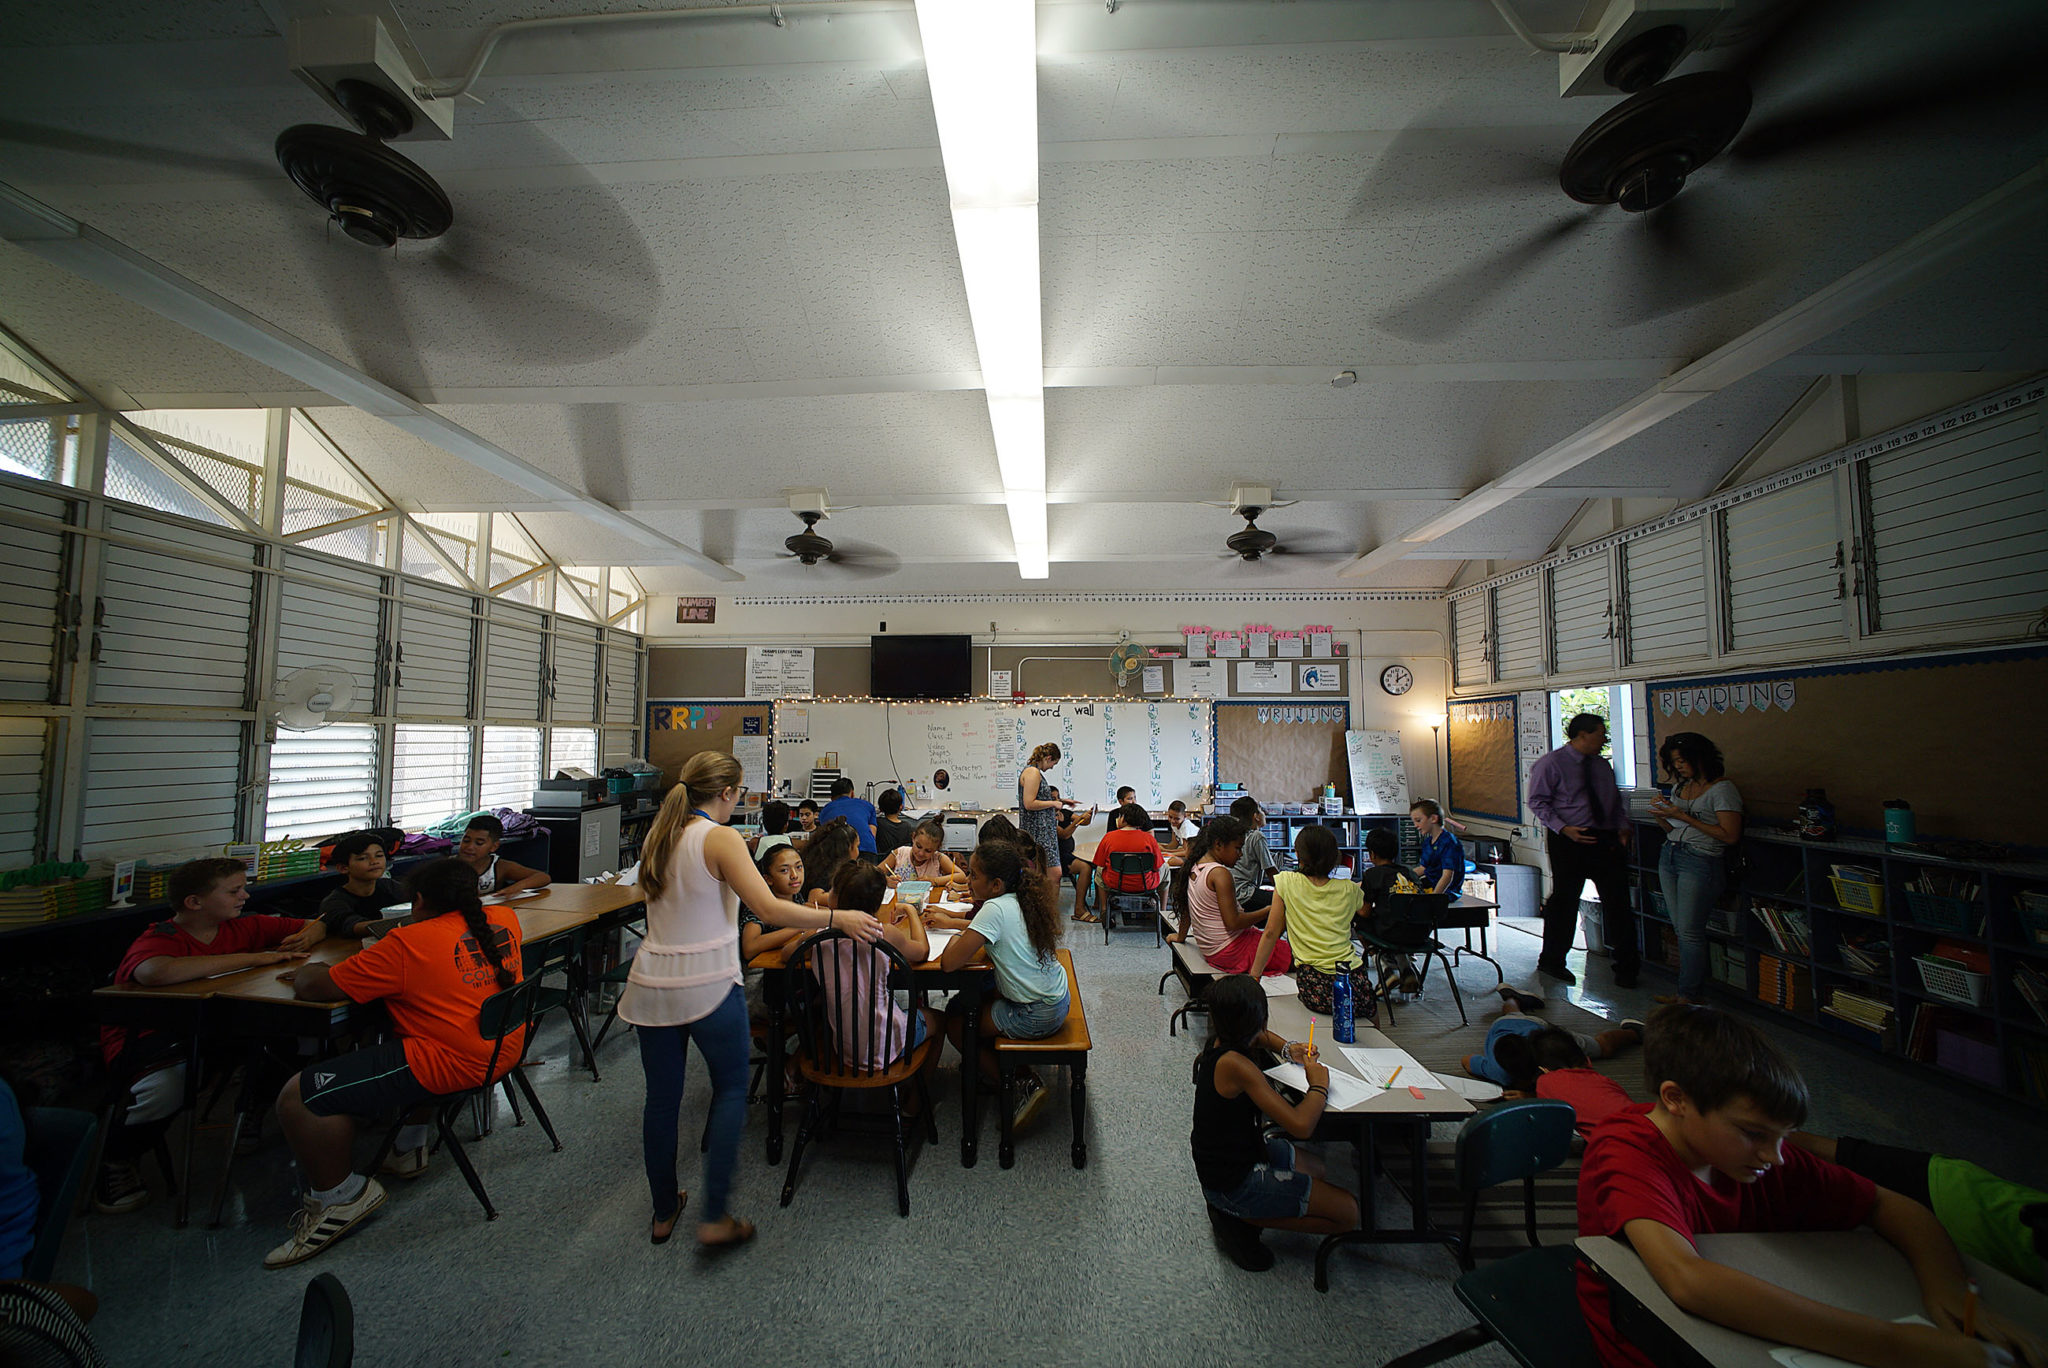 Ceiling fans blow in warm August at Makaha Elementary School.